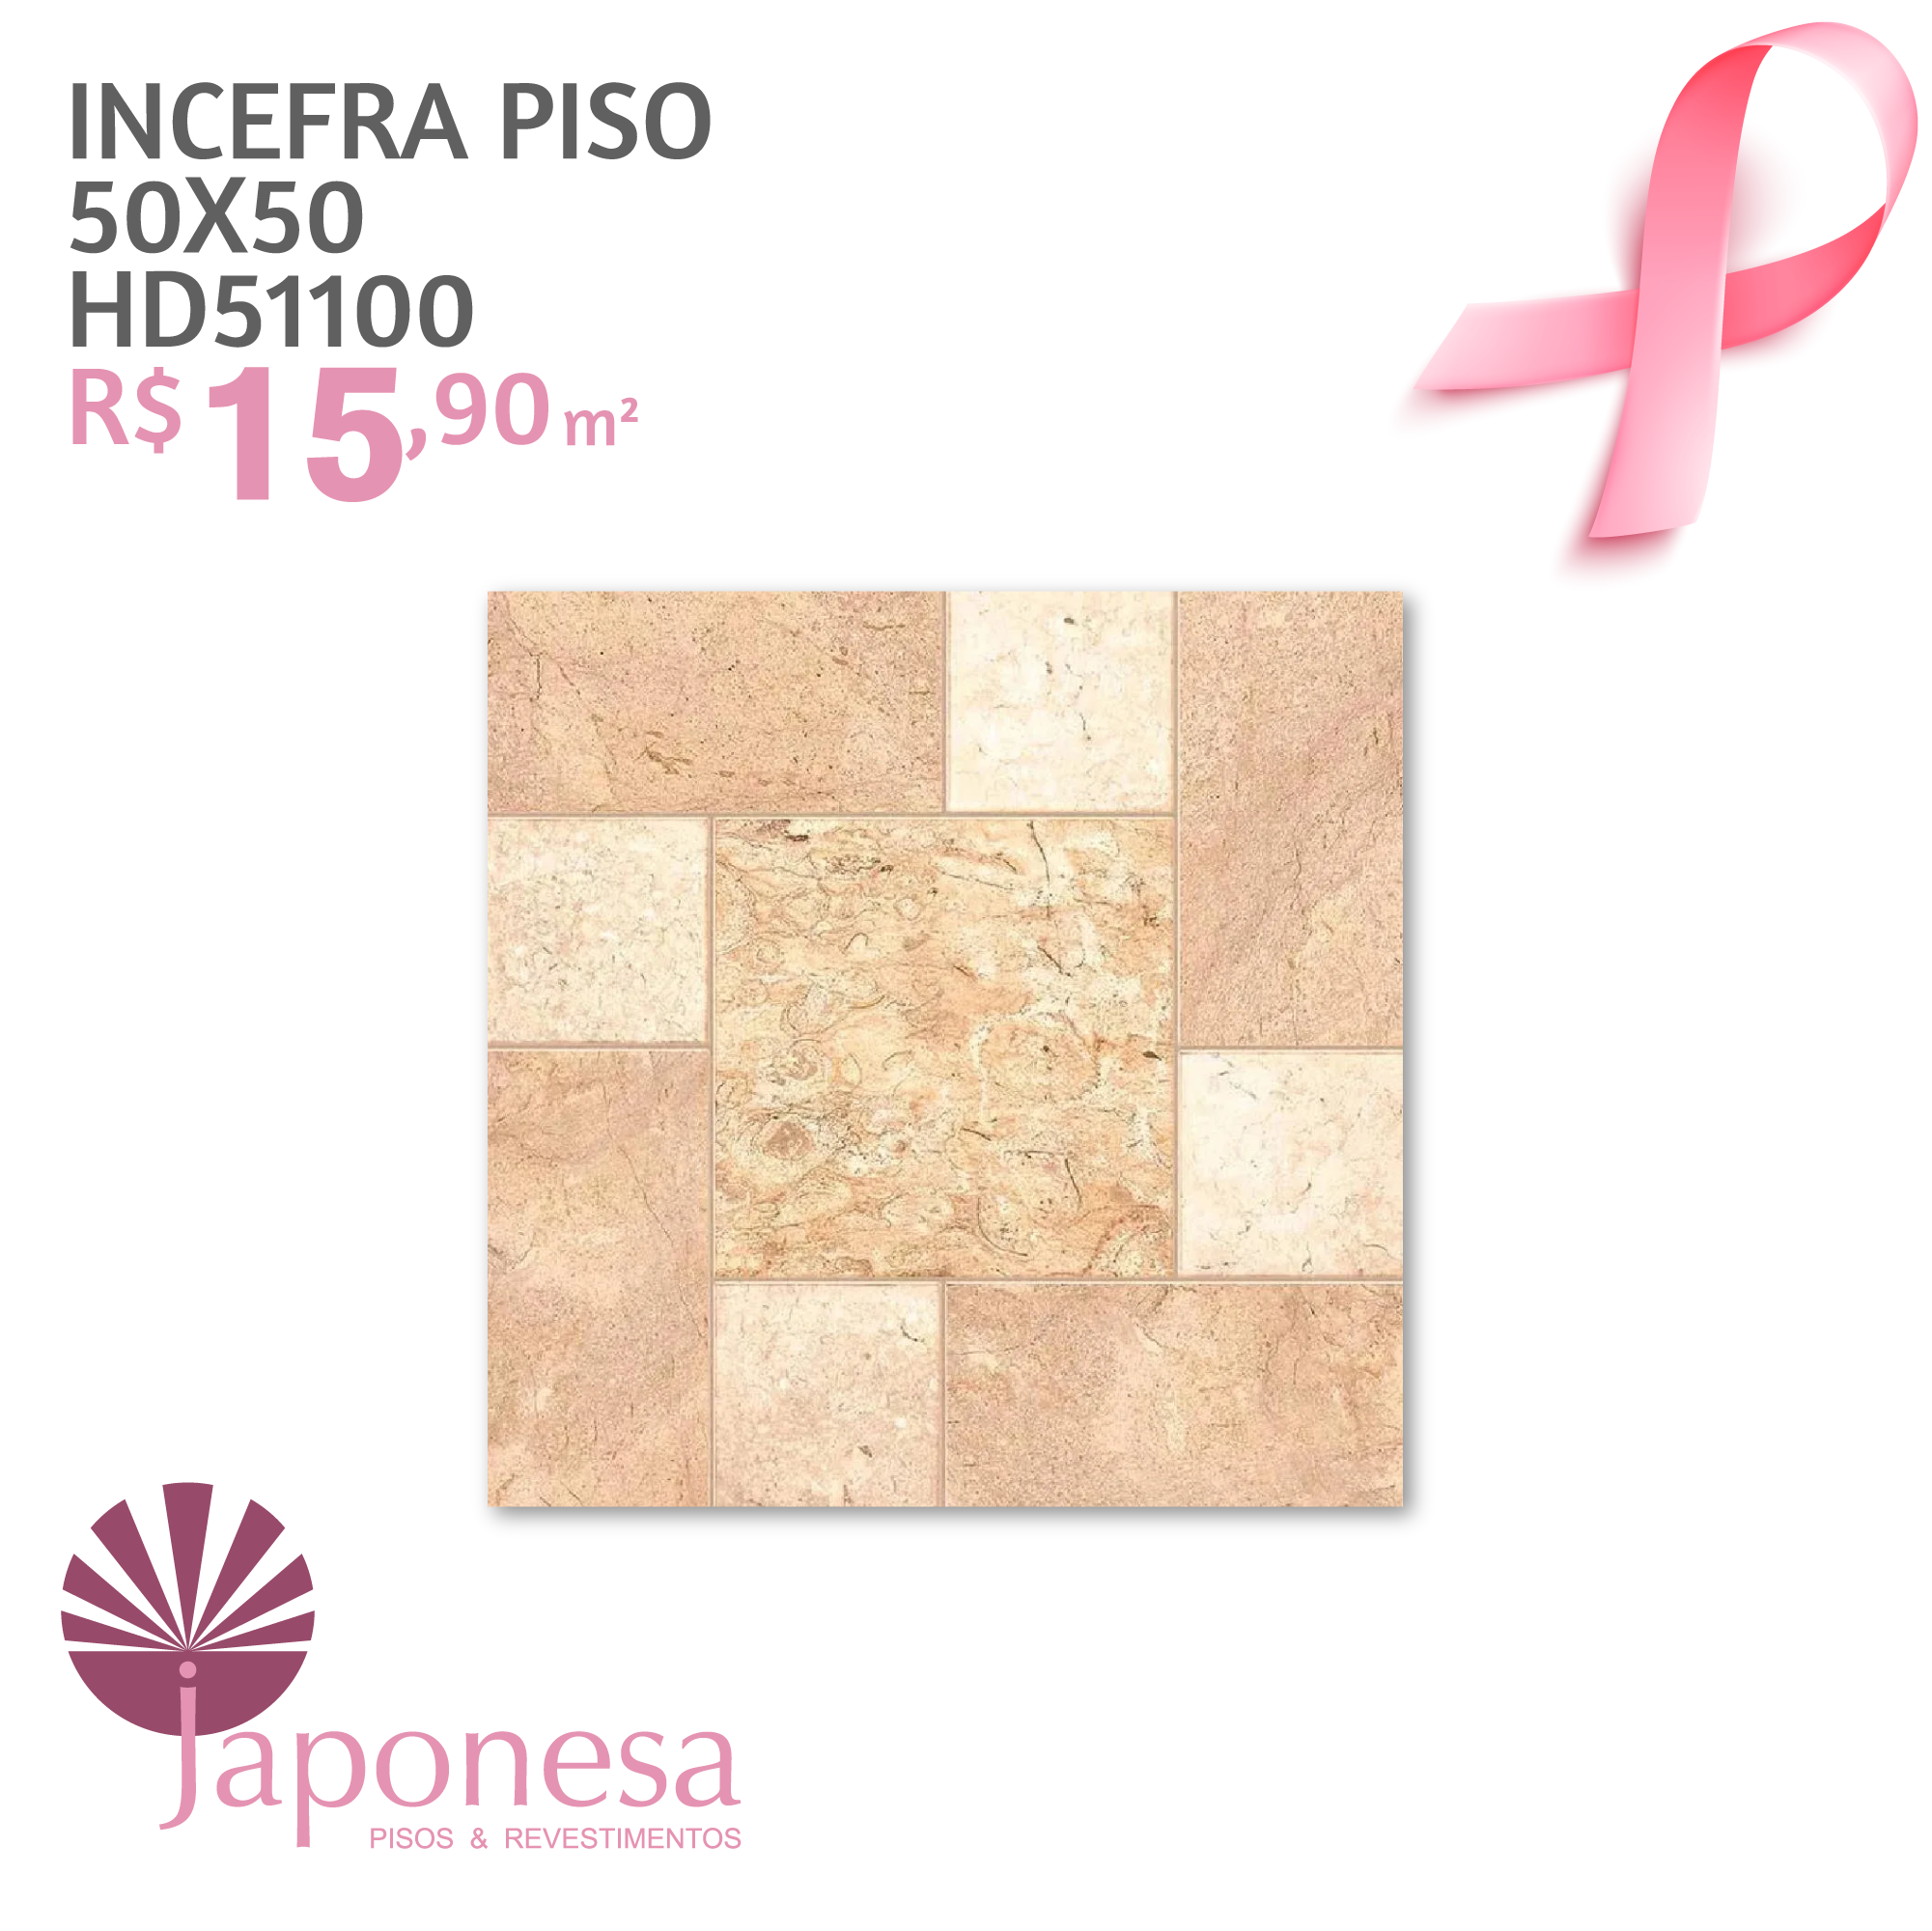 Incefra Piso 50×150 HD51100